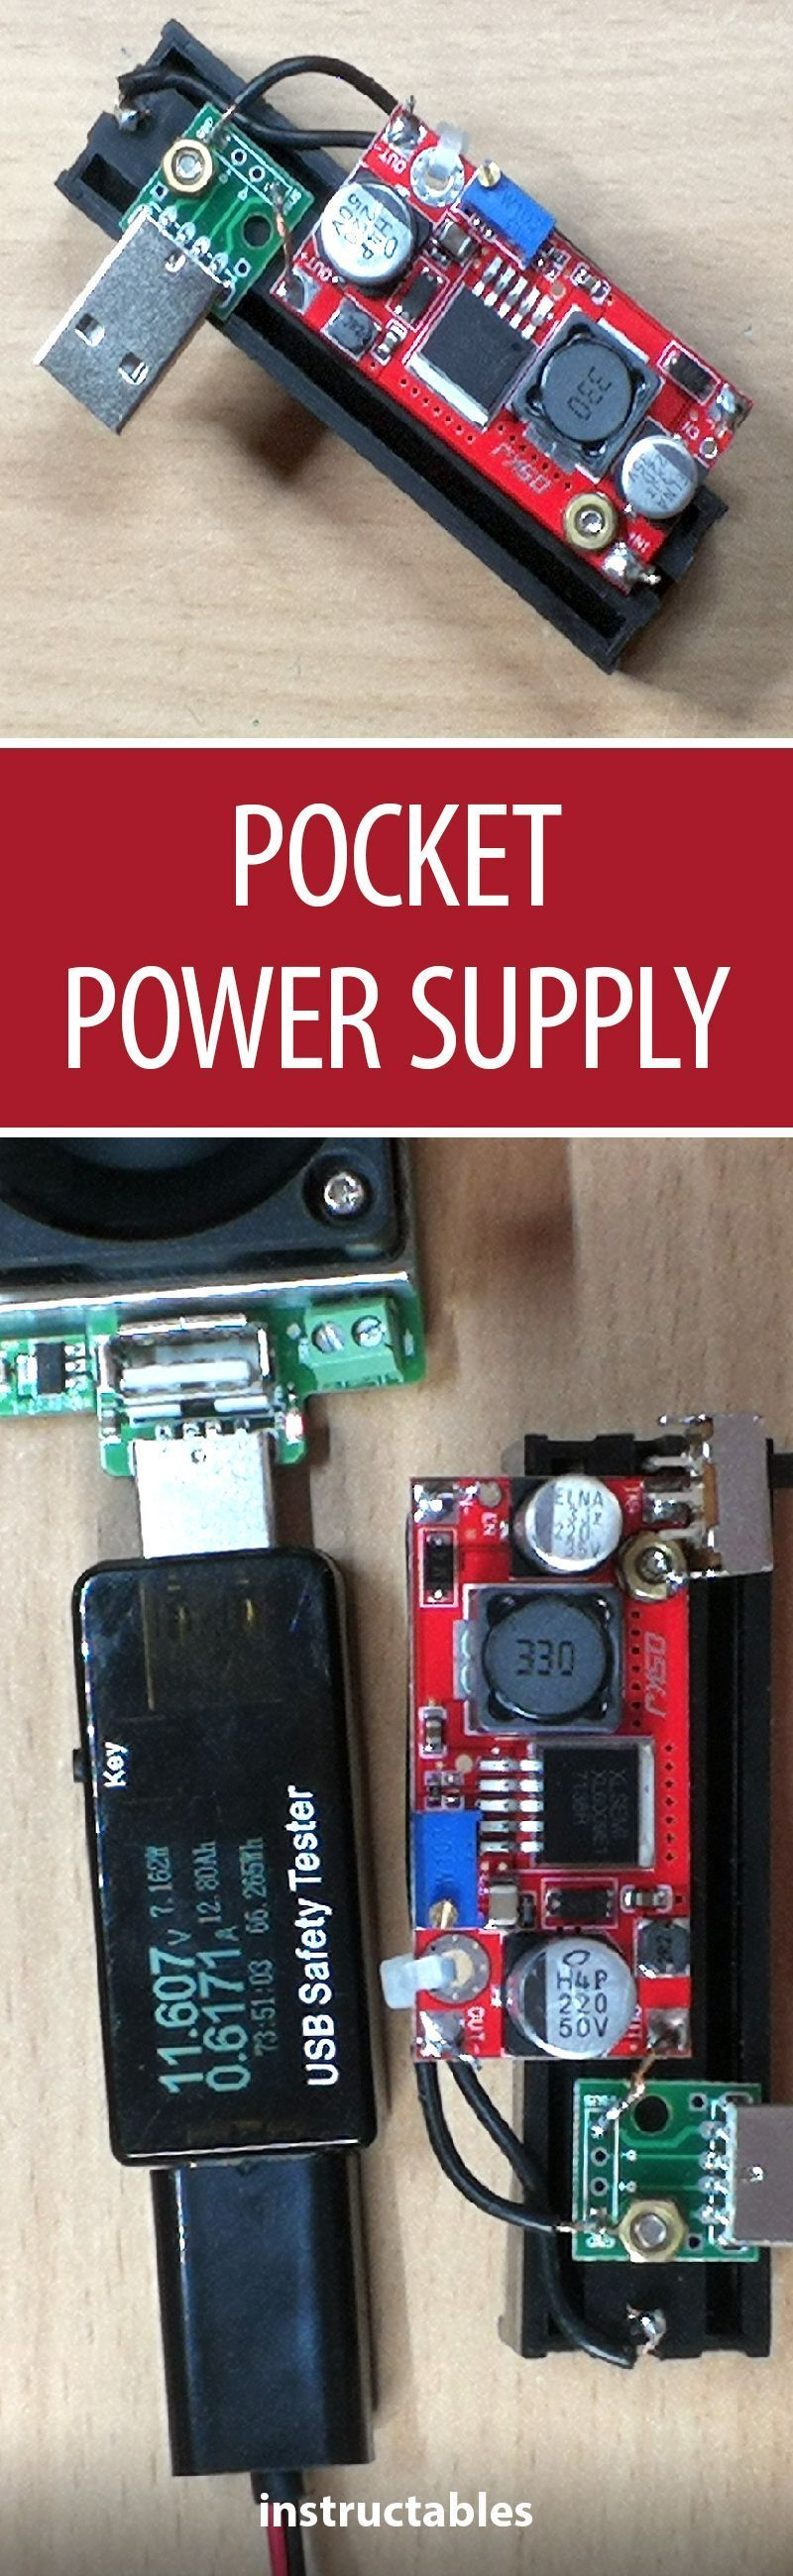 Pocket Power Supply